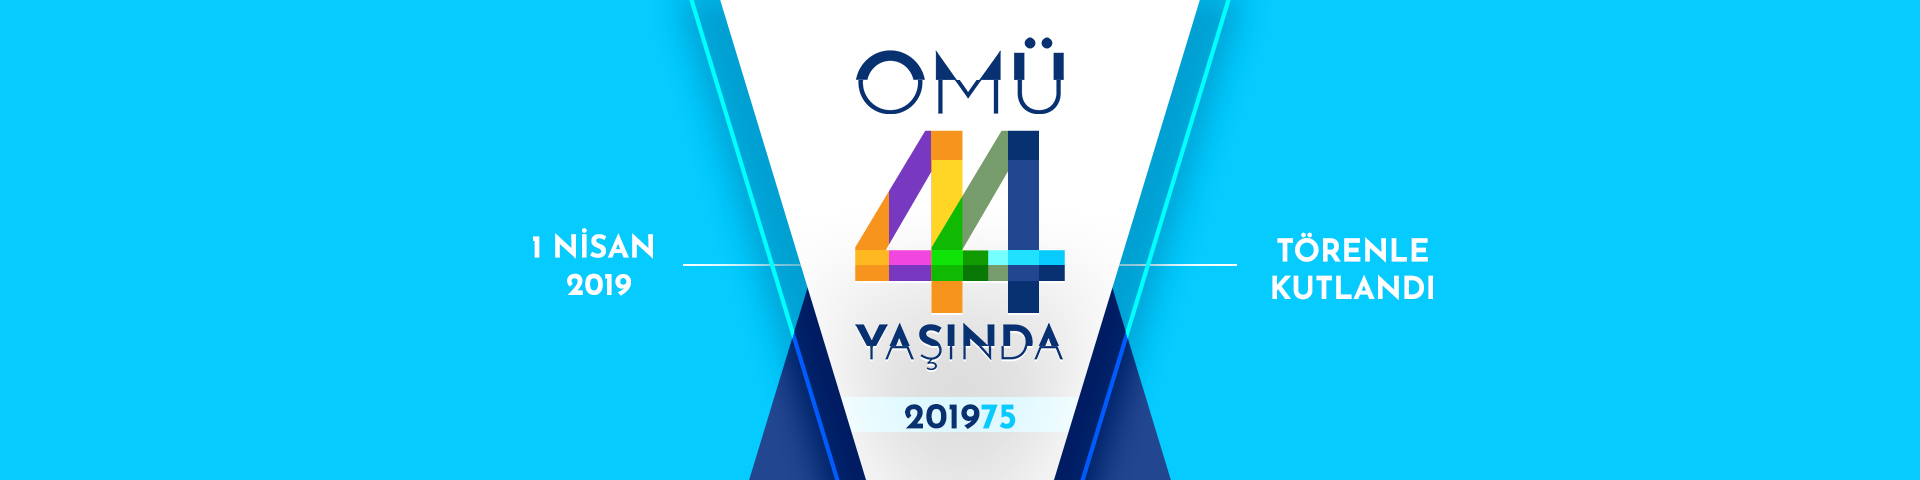 44th Anniversary of OMU Has Been Celebrated With Great Enthusiasm